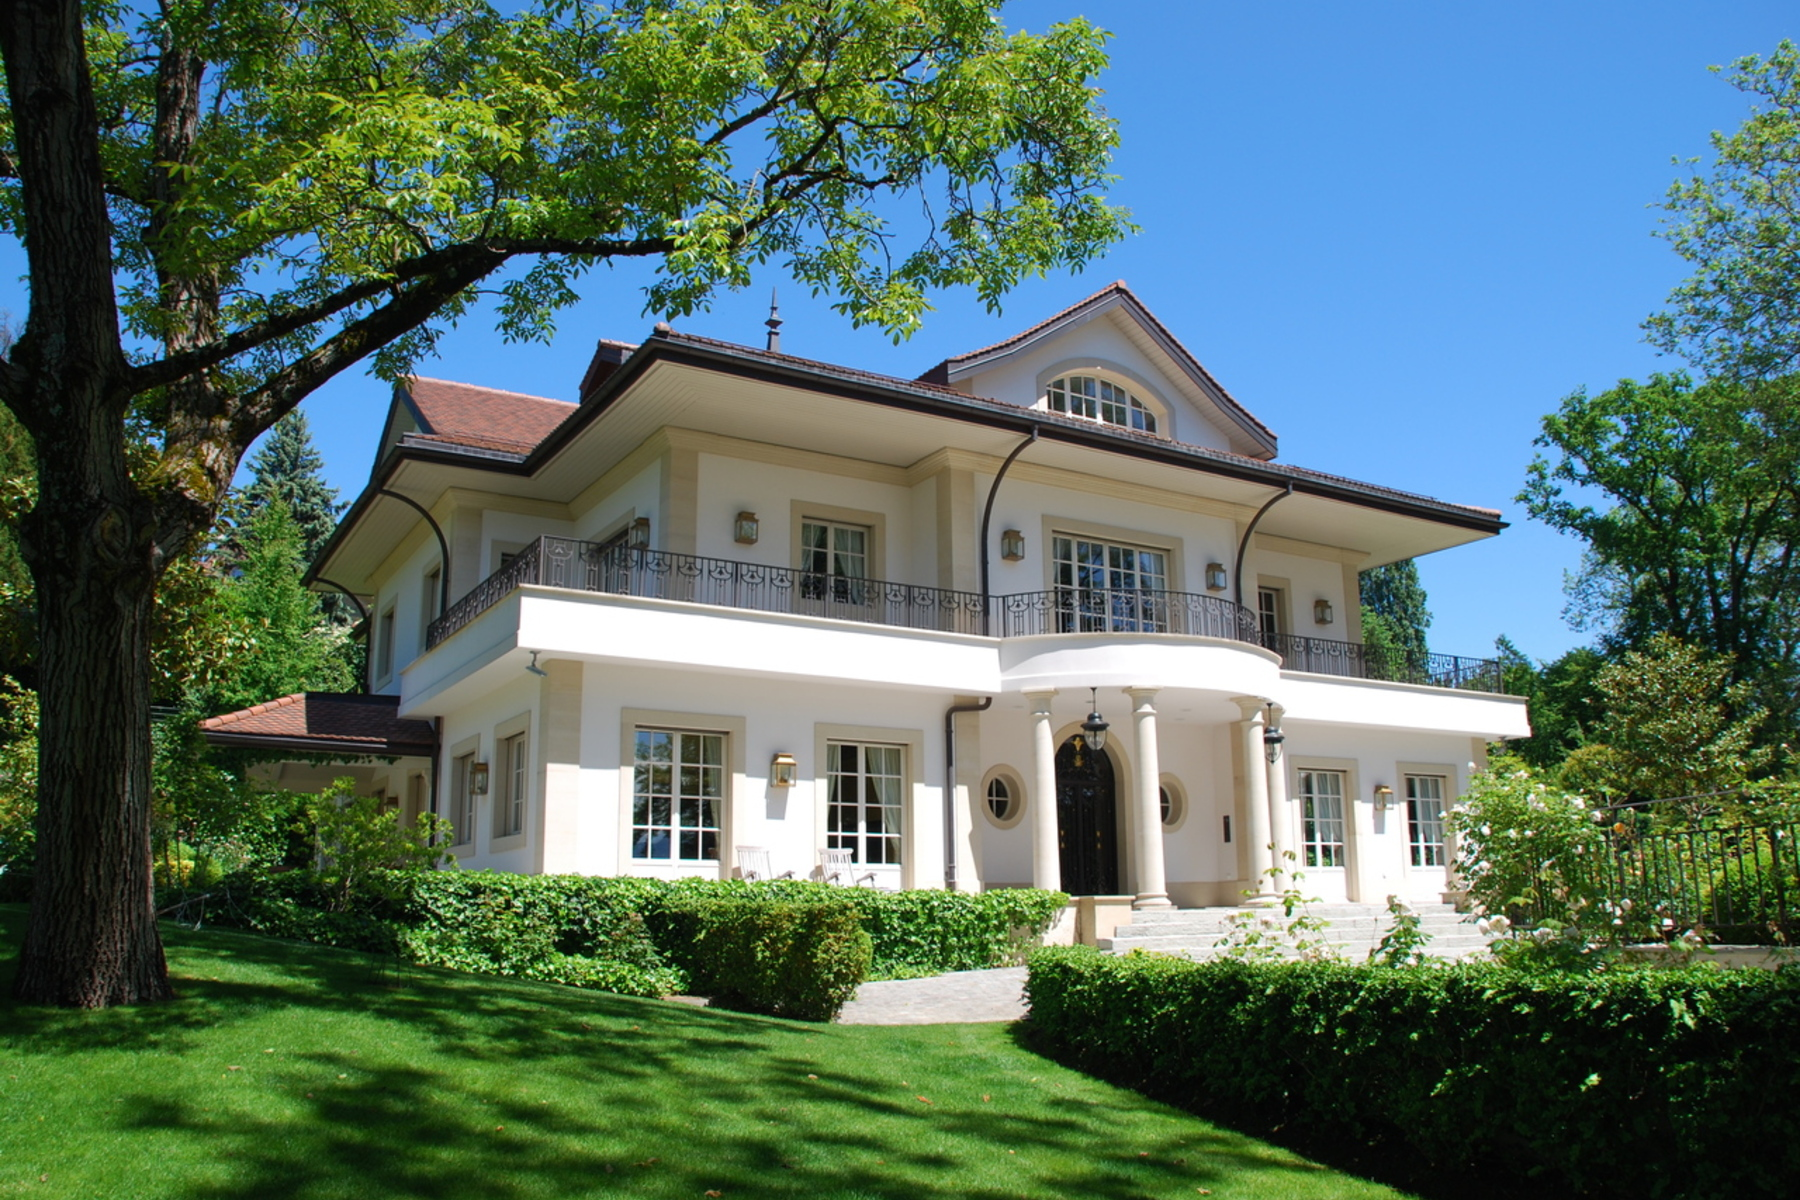 Single Family Home for Sale at Superb mansion close to Denantou park Lausanne Lausanne, Vaud, 1006 Switzerland